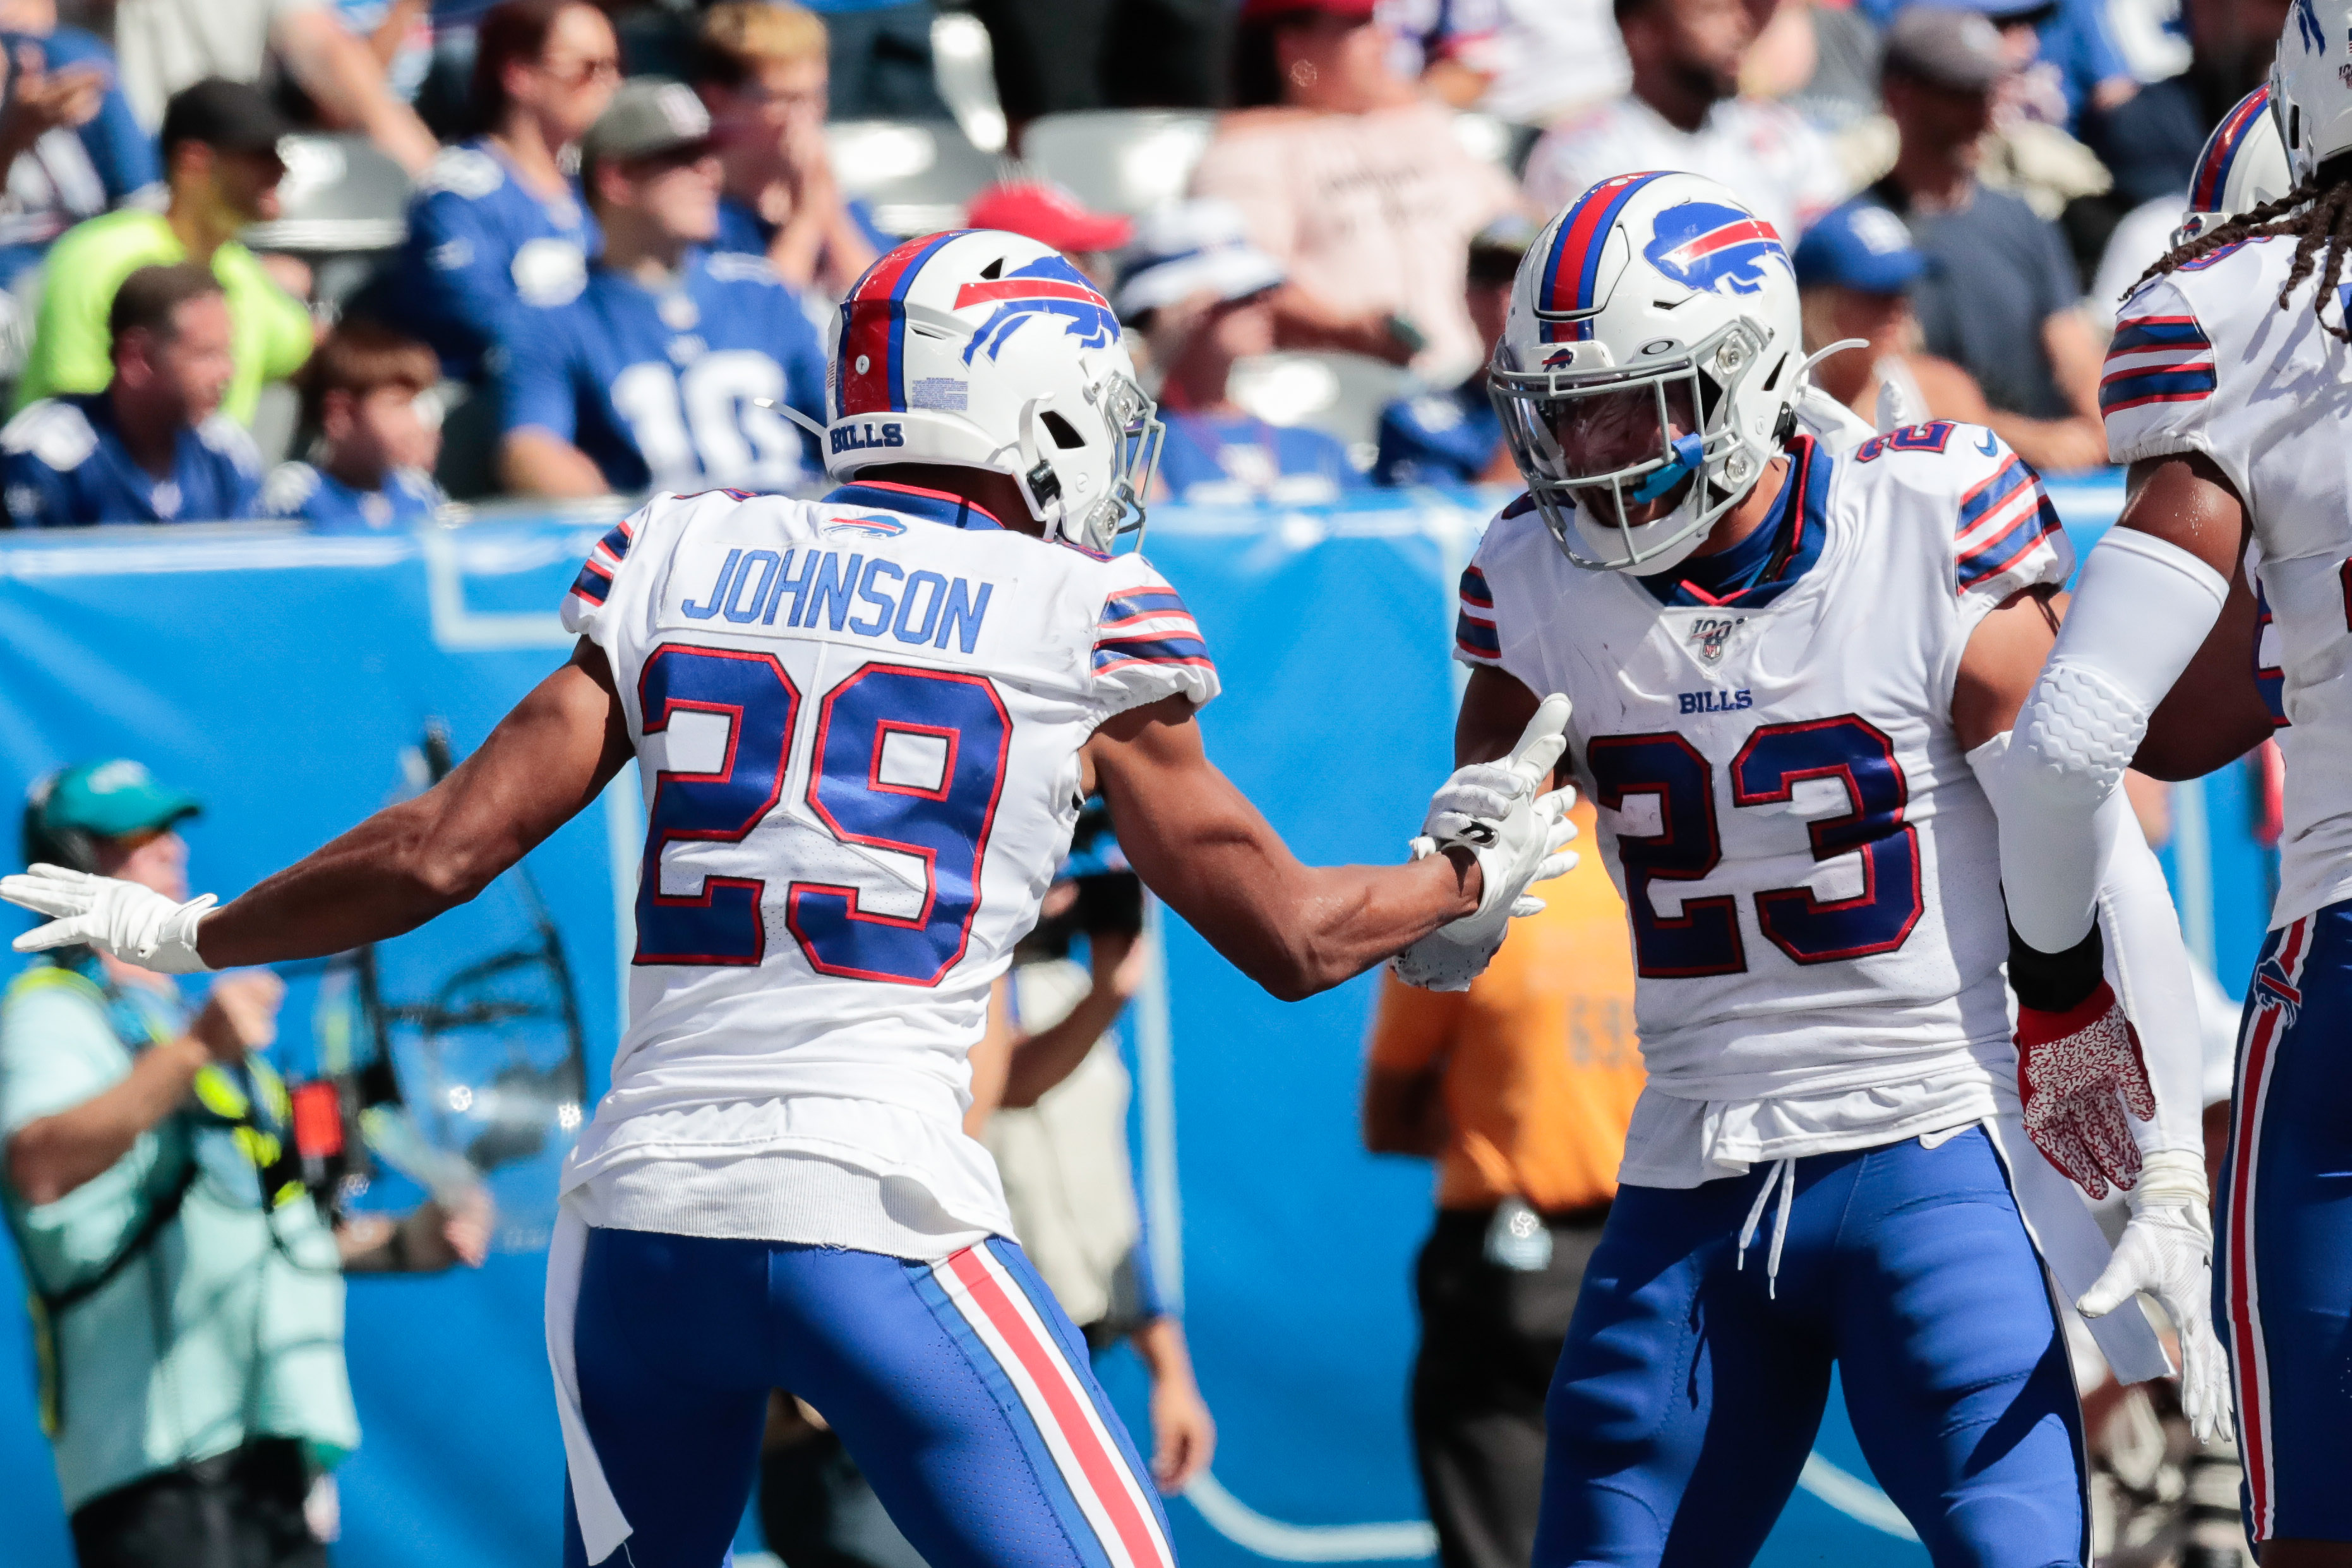 """Hyde on Josh Allen: """"He's a kid, just out ther having fun"""""""